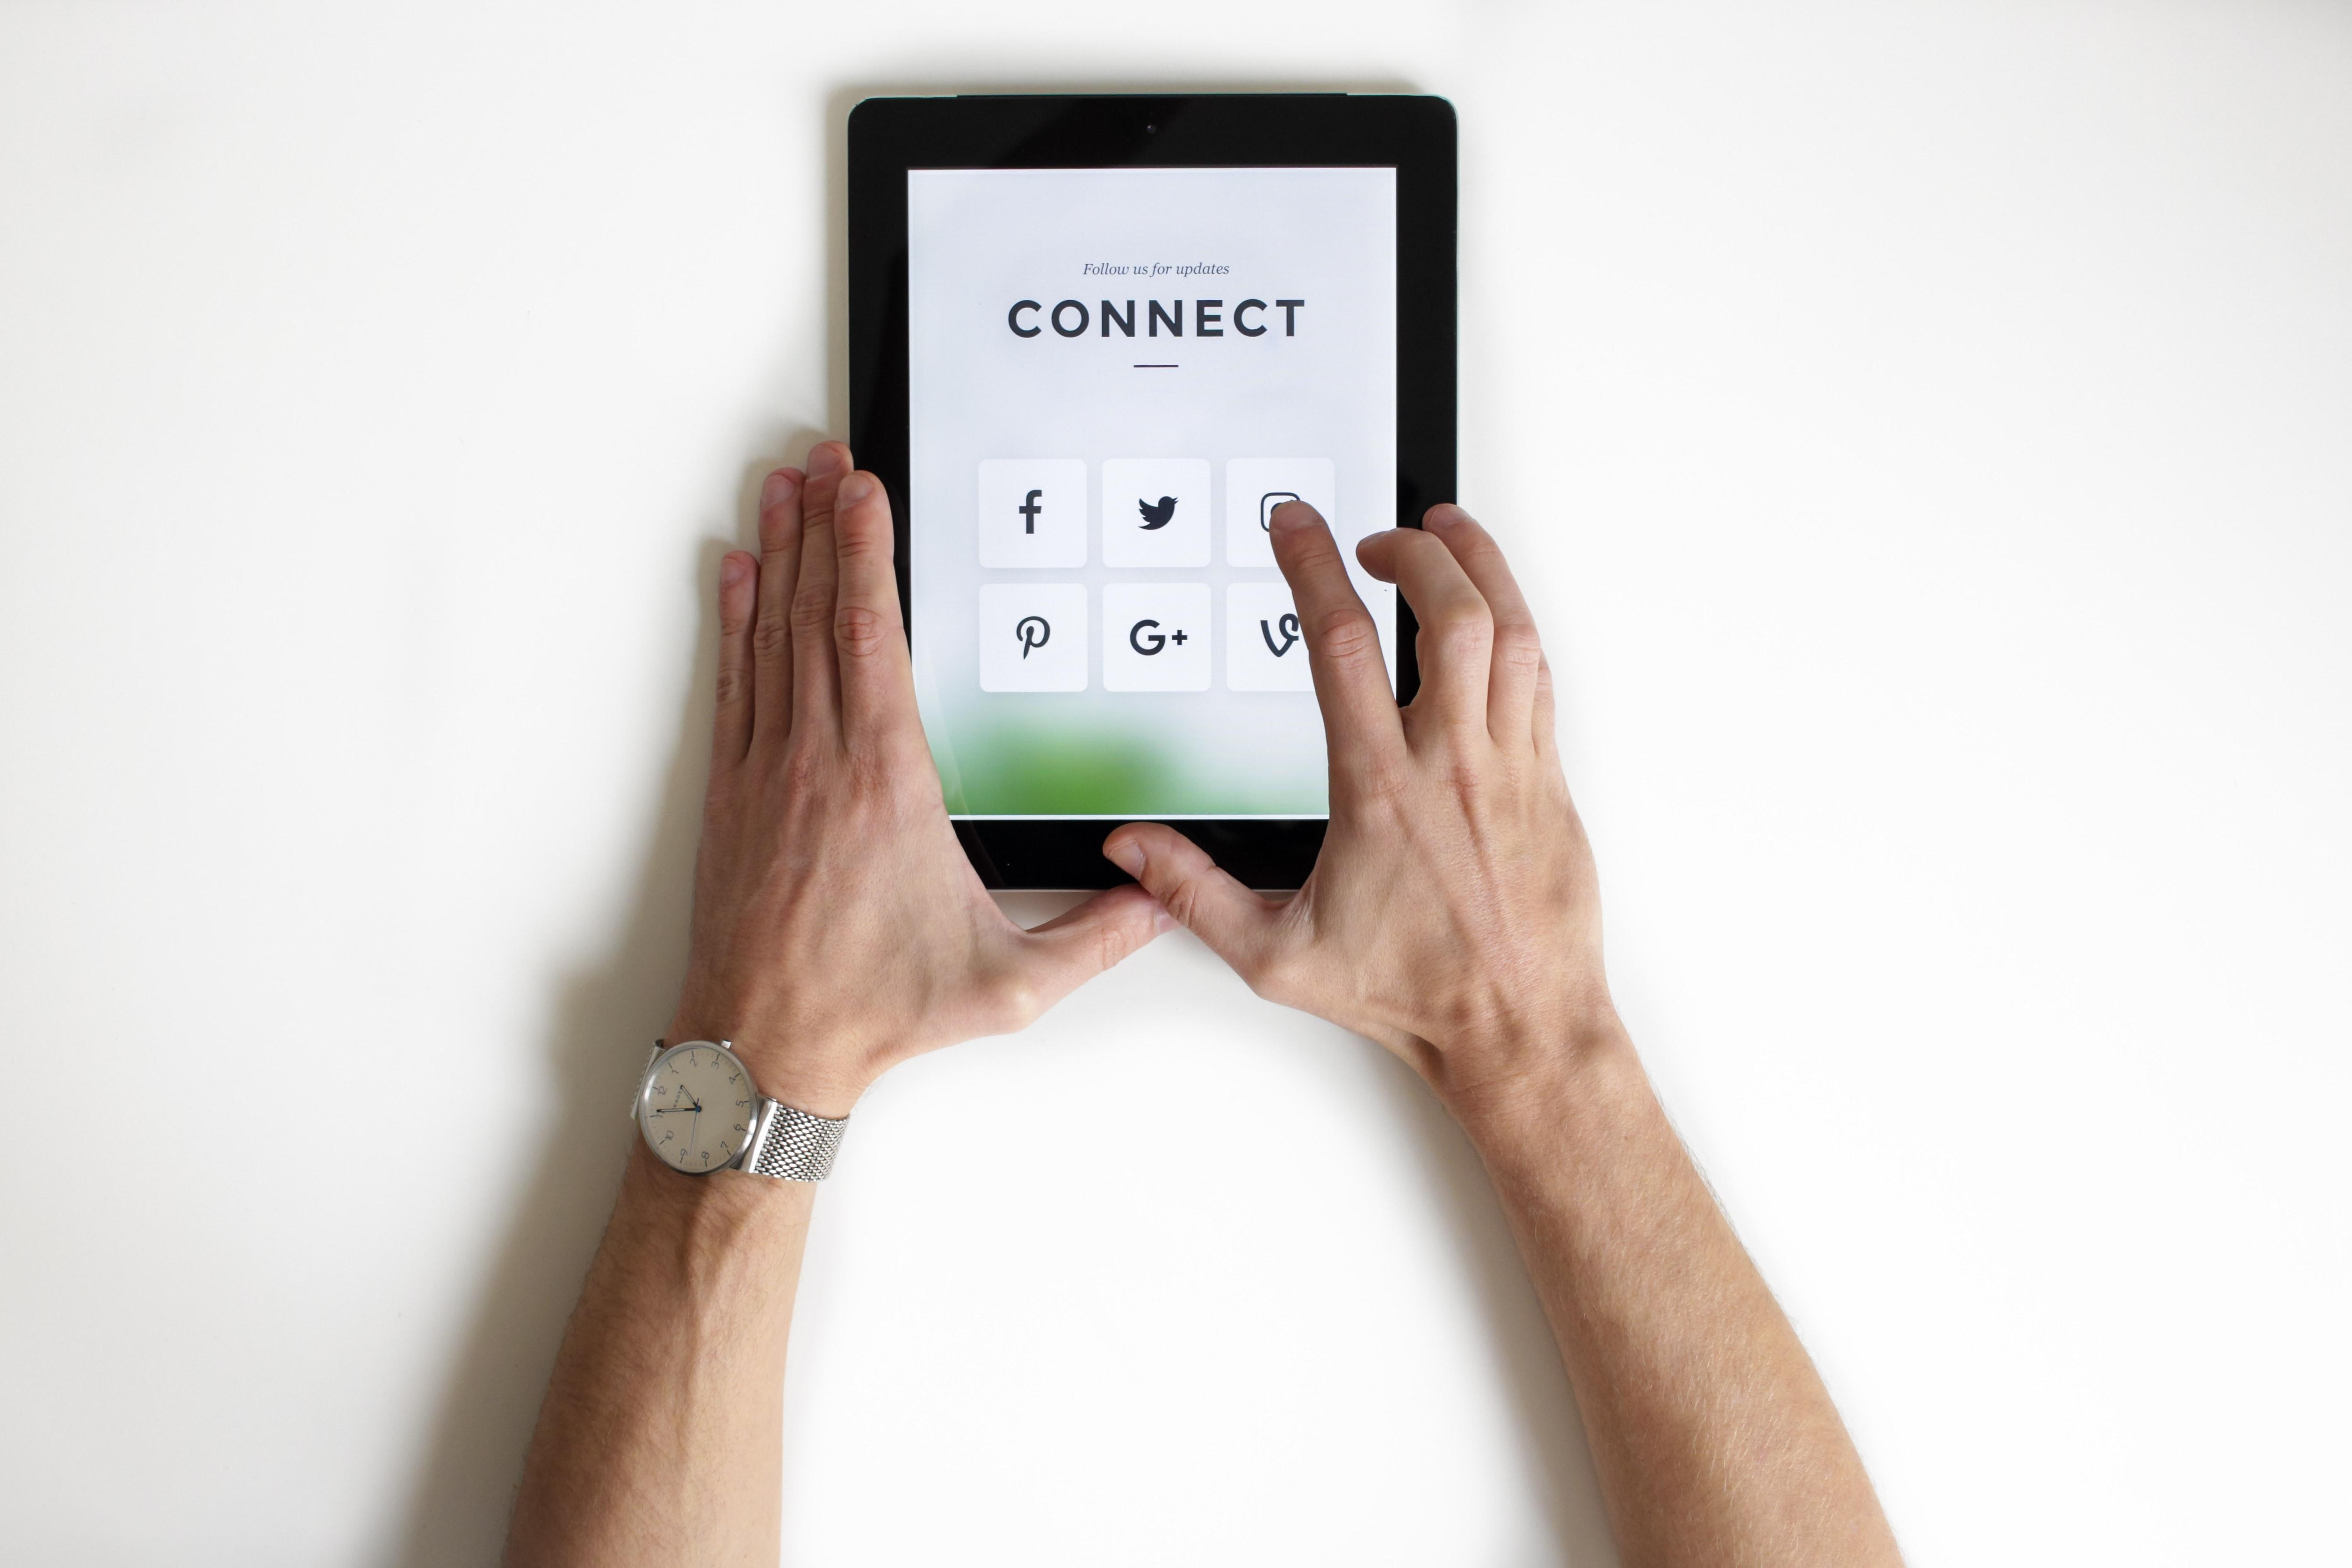 ipad display connect to social networks